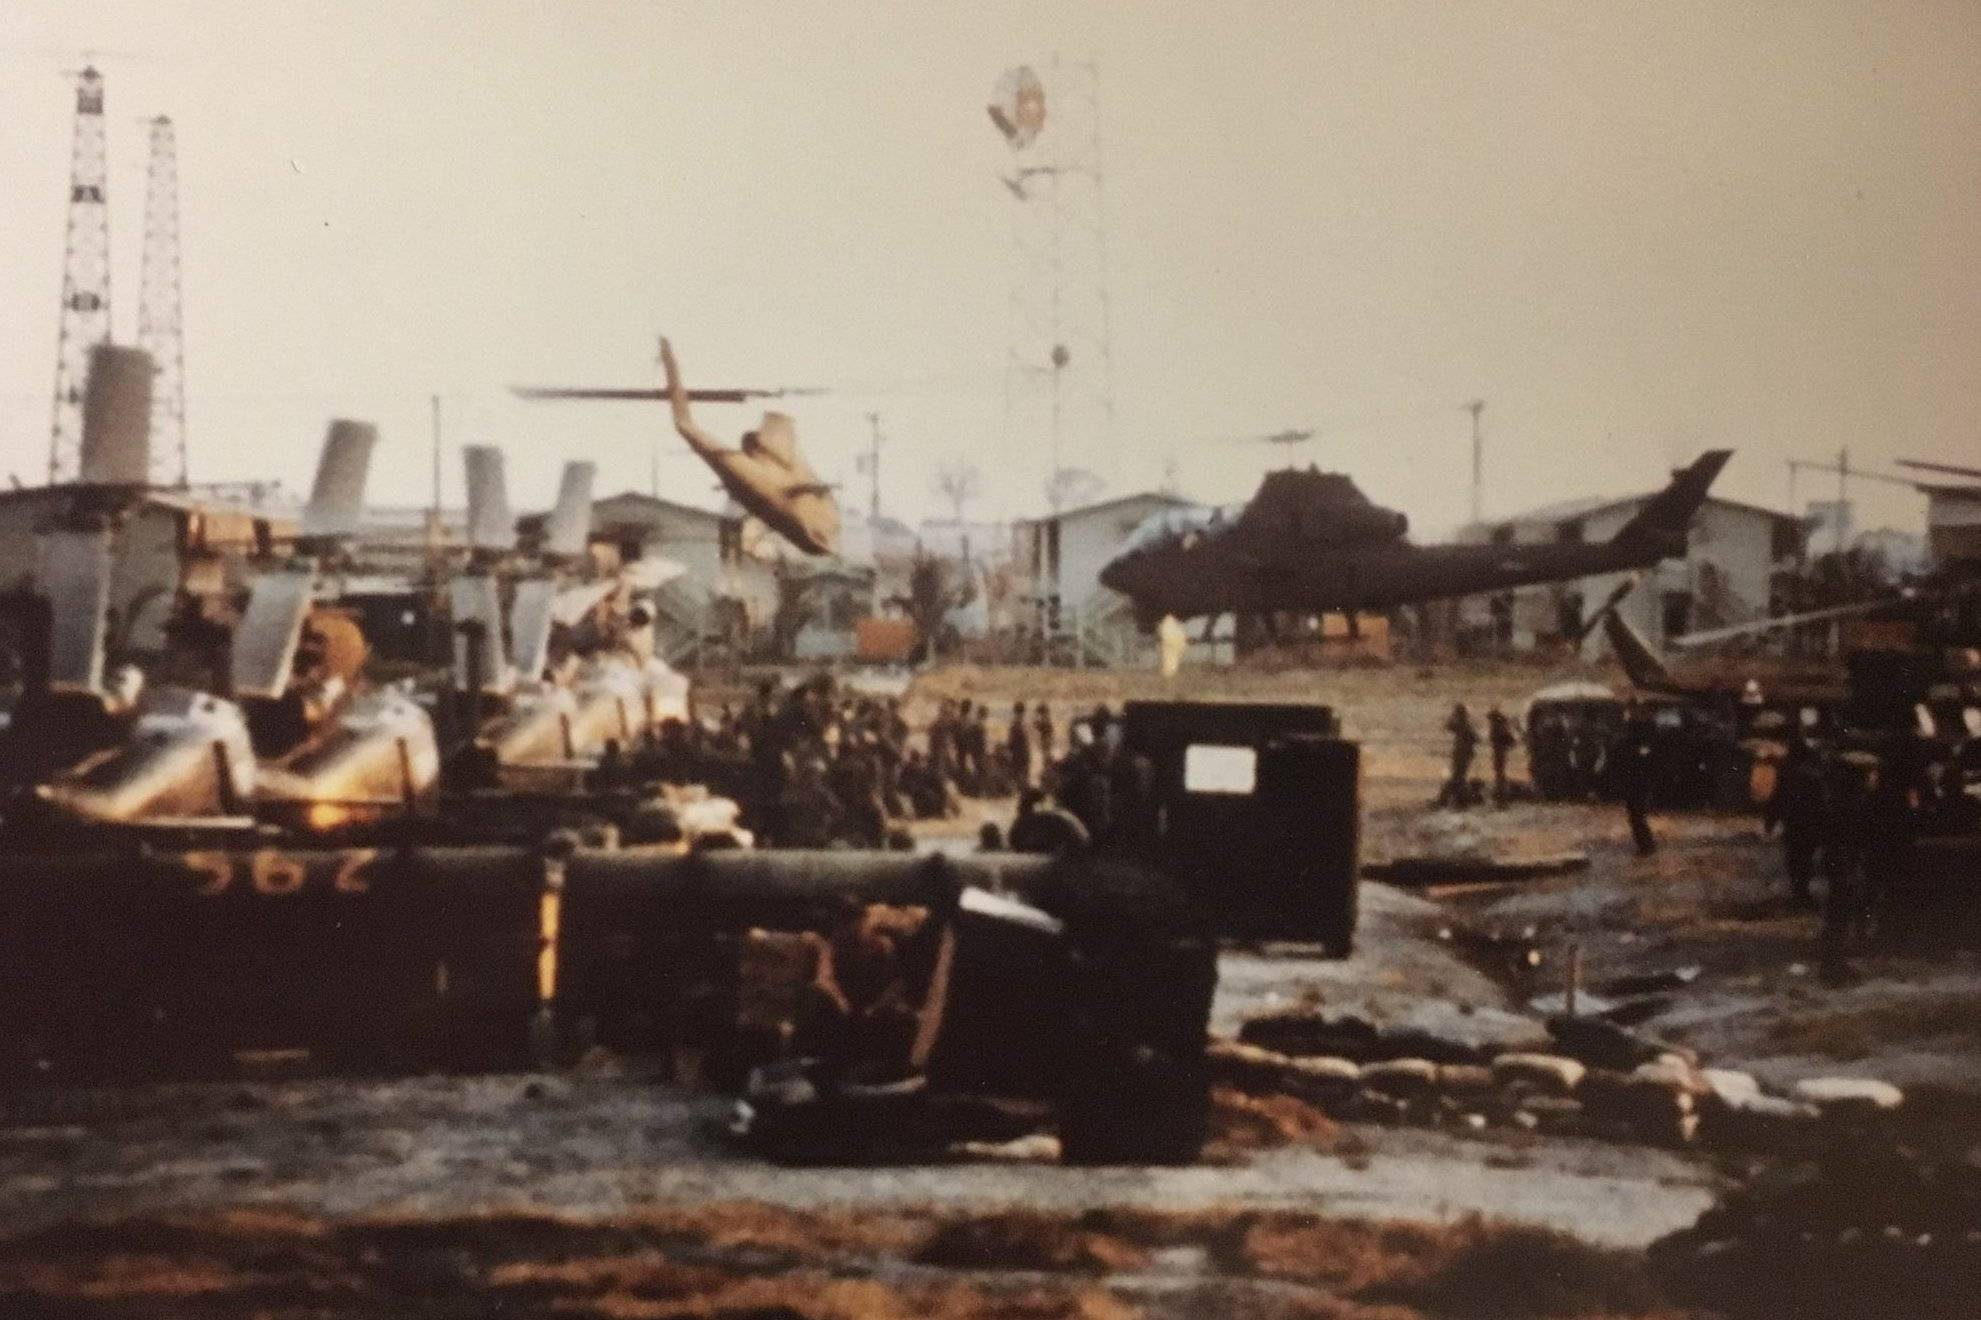 Helicopters and other vehicles on a base.